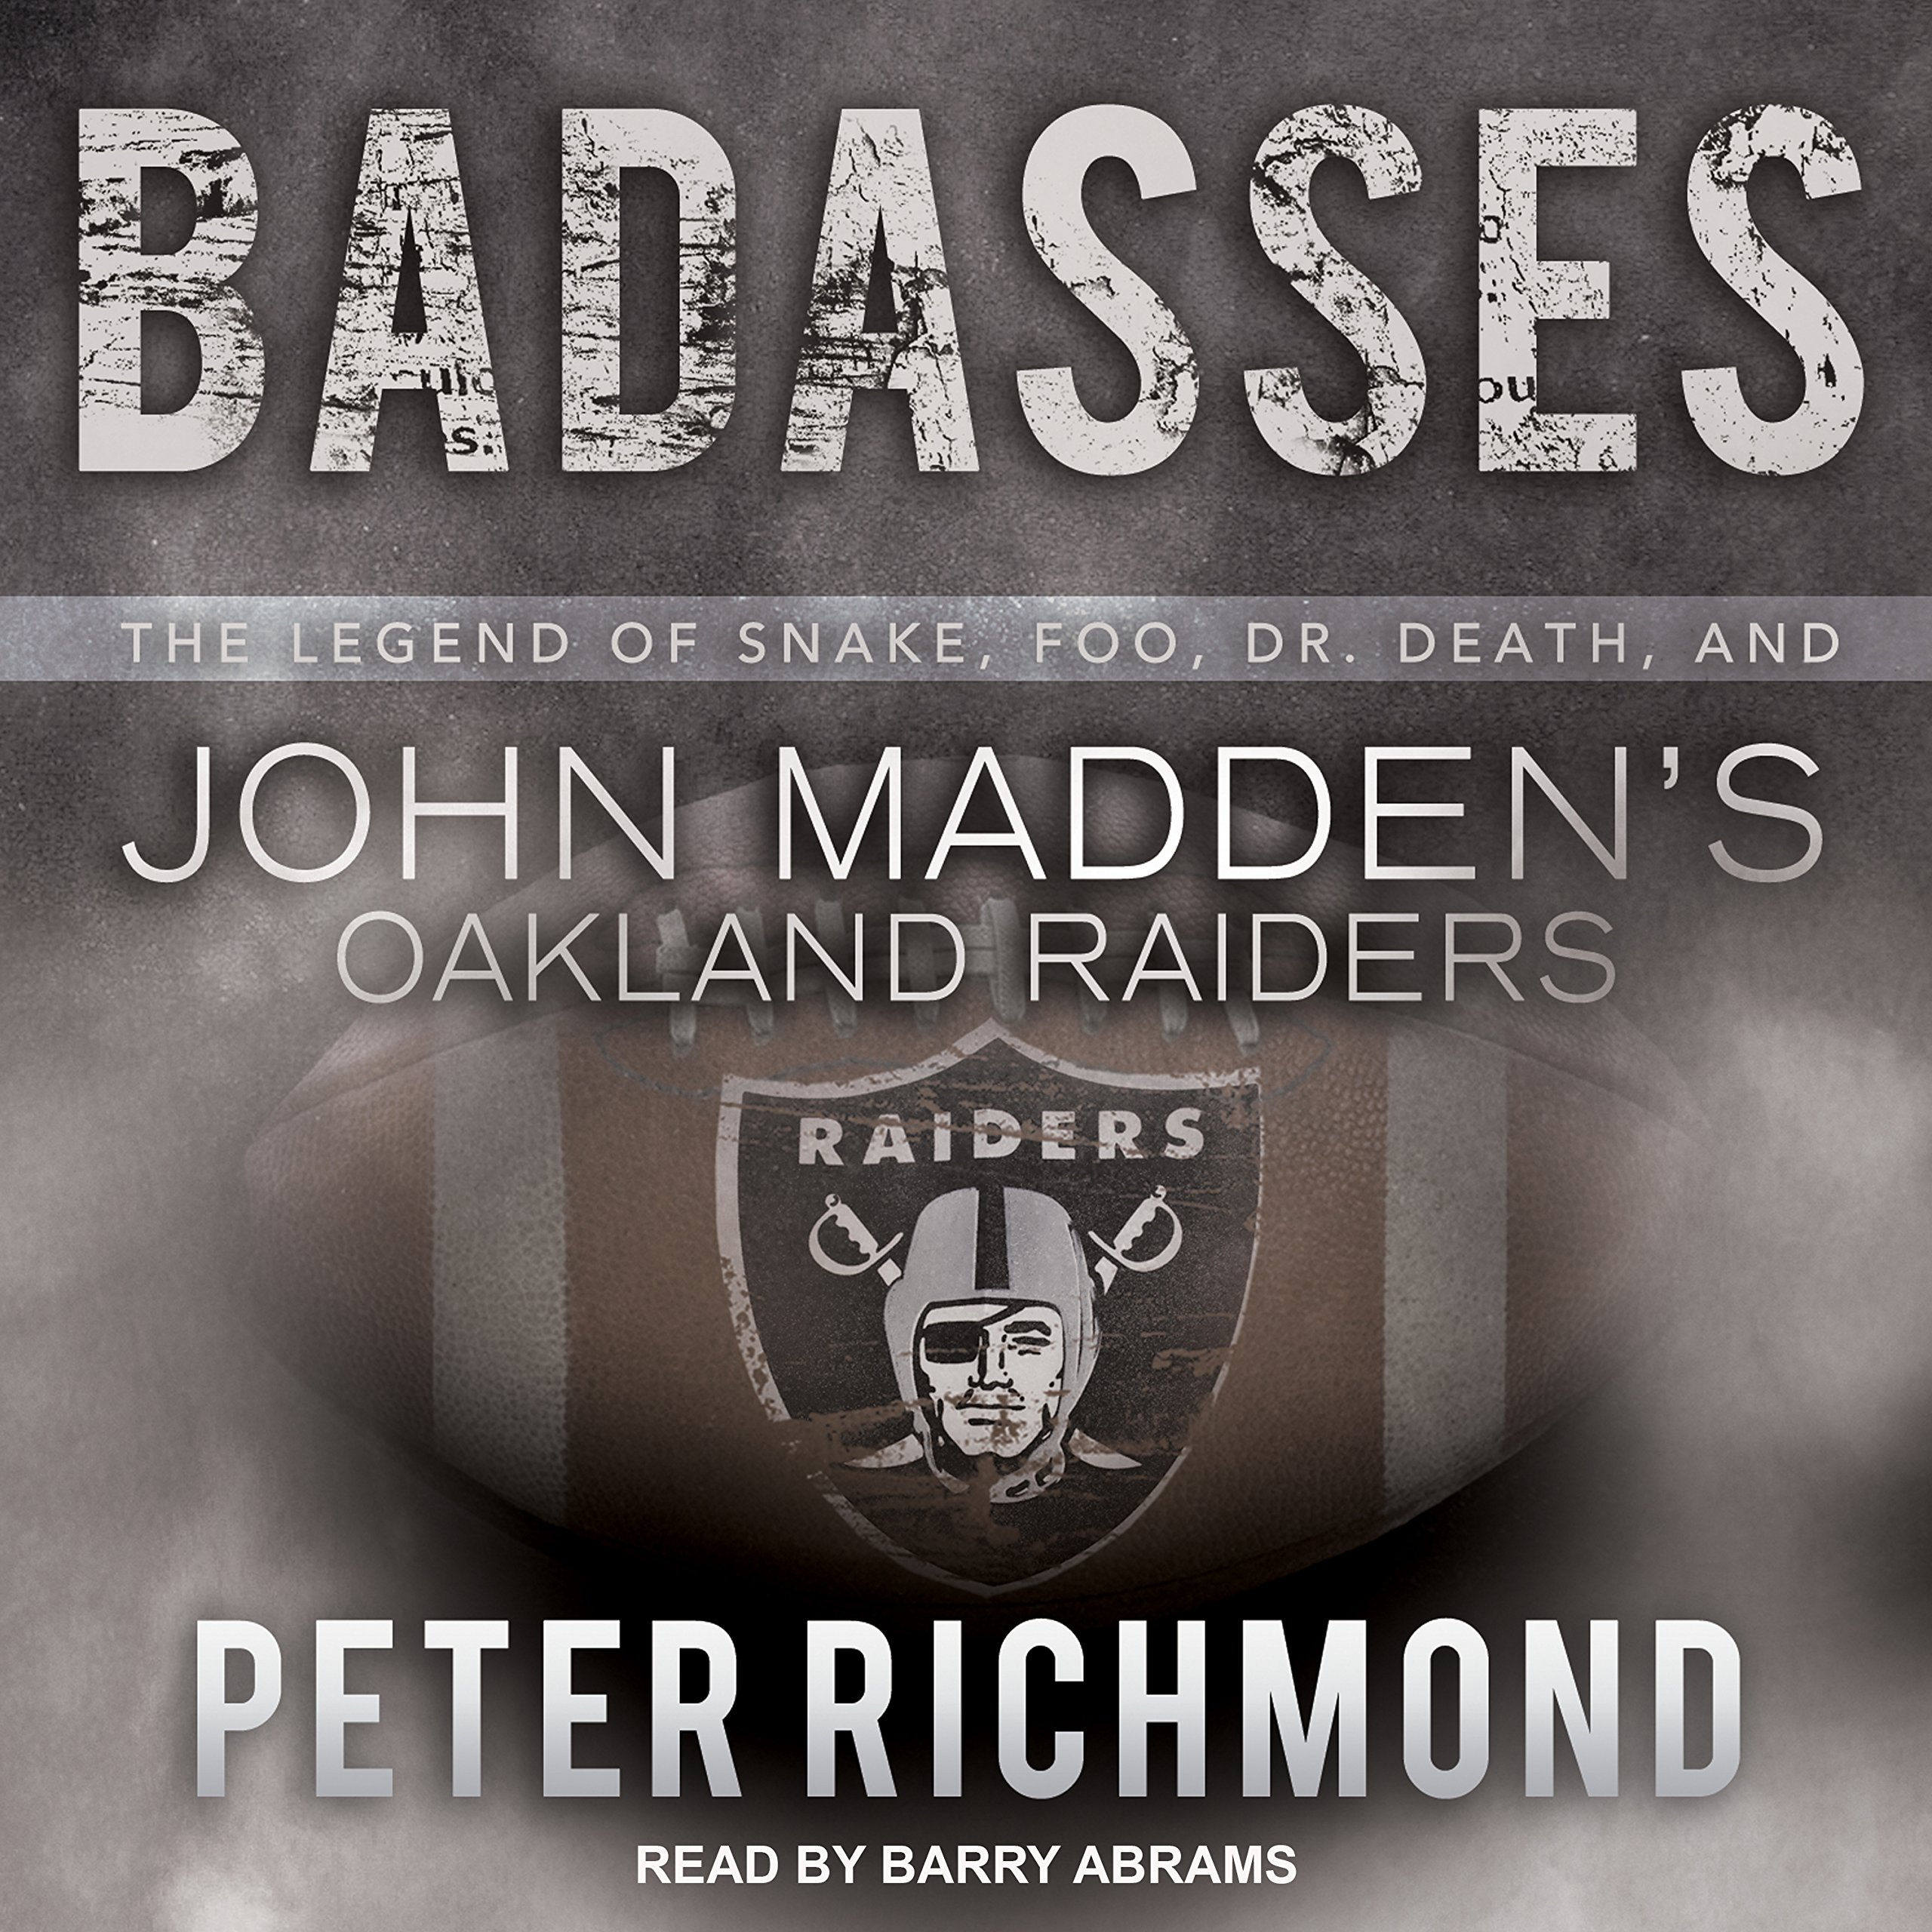 Badasses: The Legend of Snake, Foo, Dr. Death, and John Madden's Oakland Raiders by Tantor Audio (Image #1)